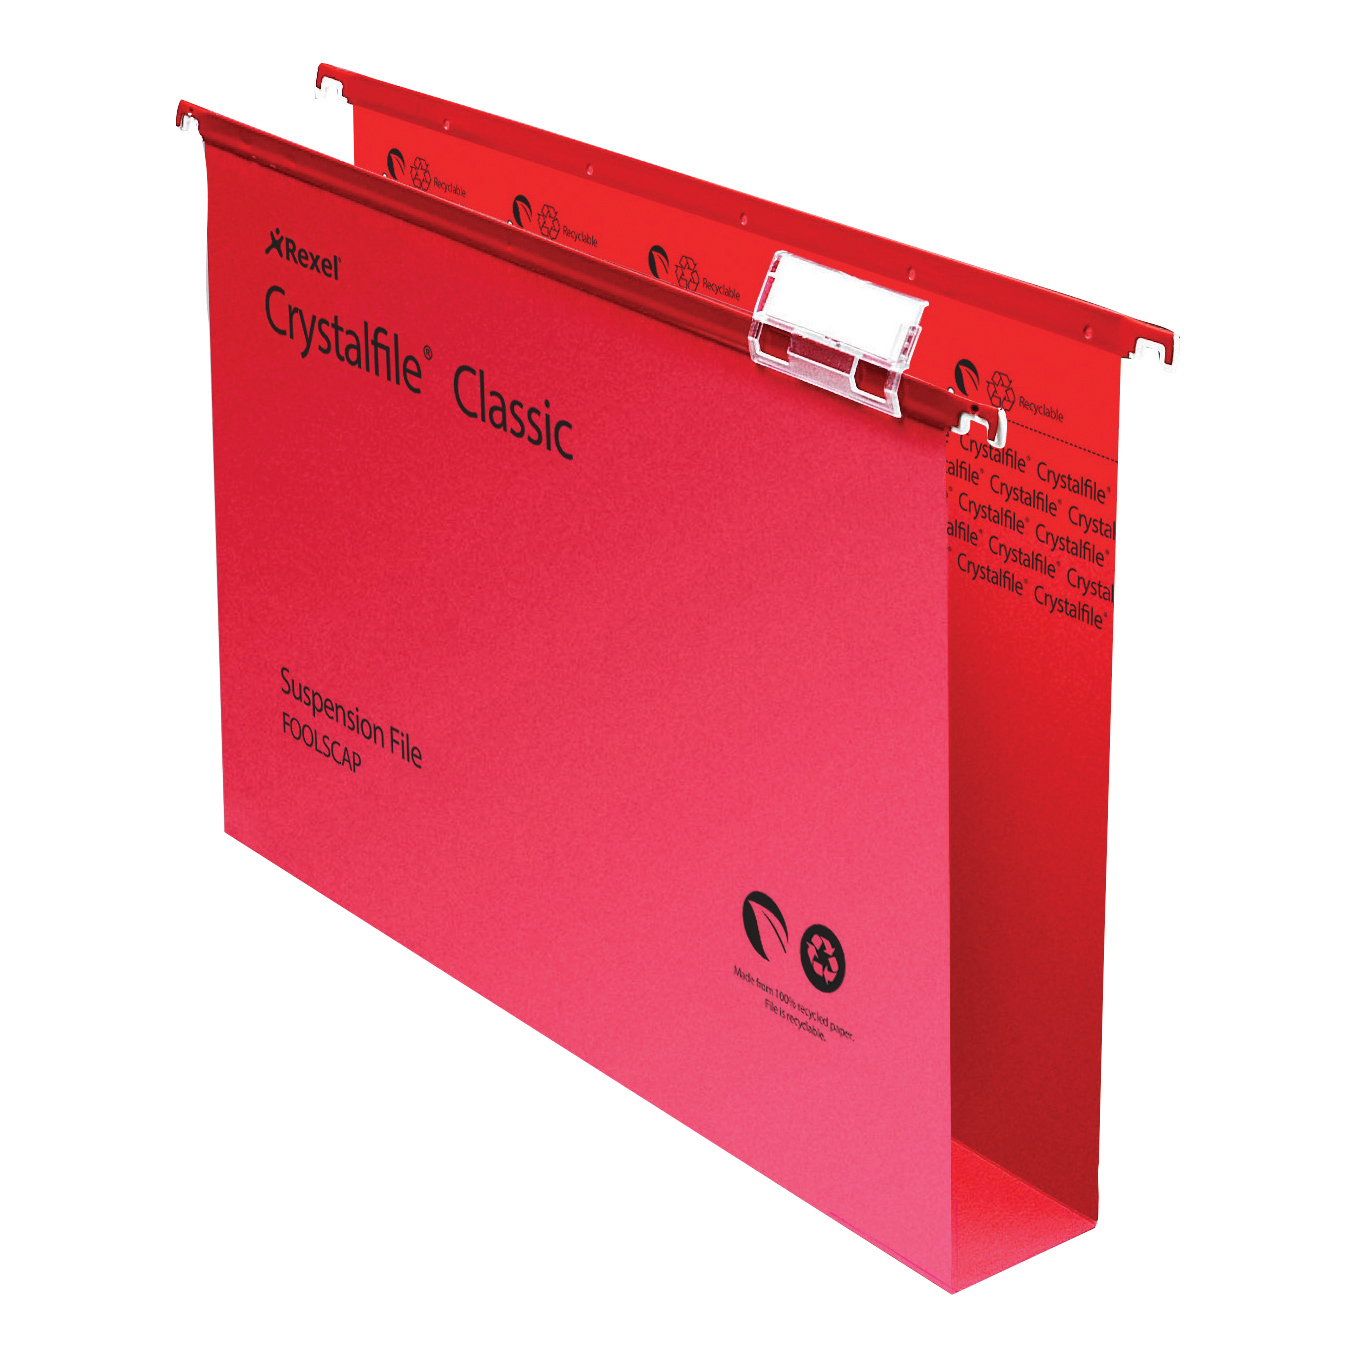 Suspension File Rexel Crystalfile Classic Suspension File Manilla 50mm Wide-base 230gsm Foolscap Red Ref 71752 Pack 50